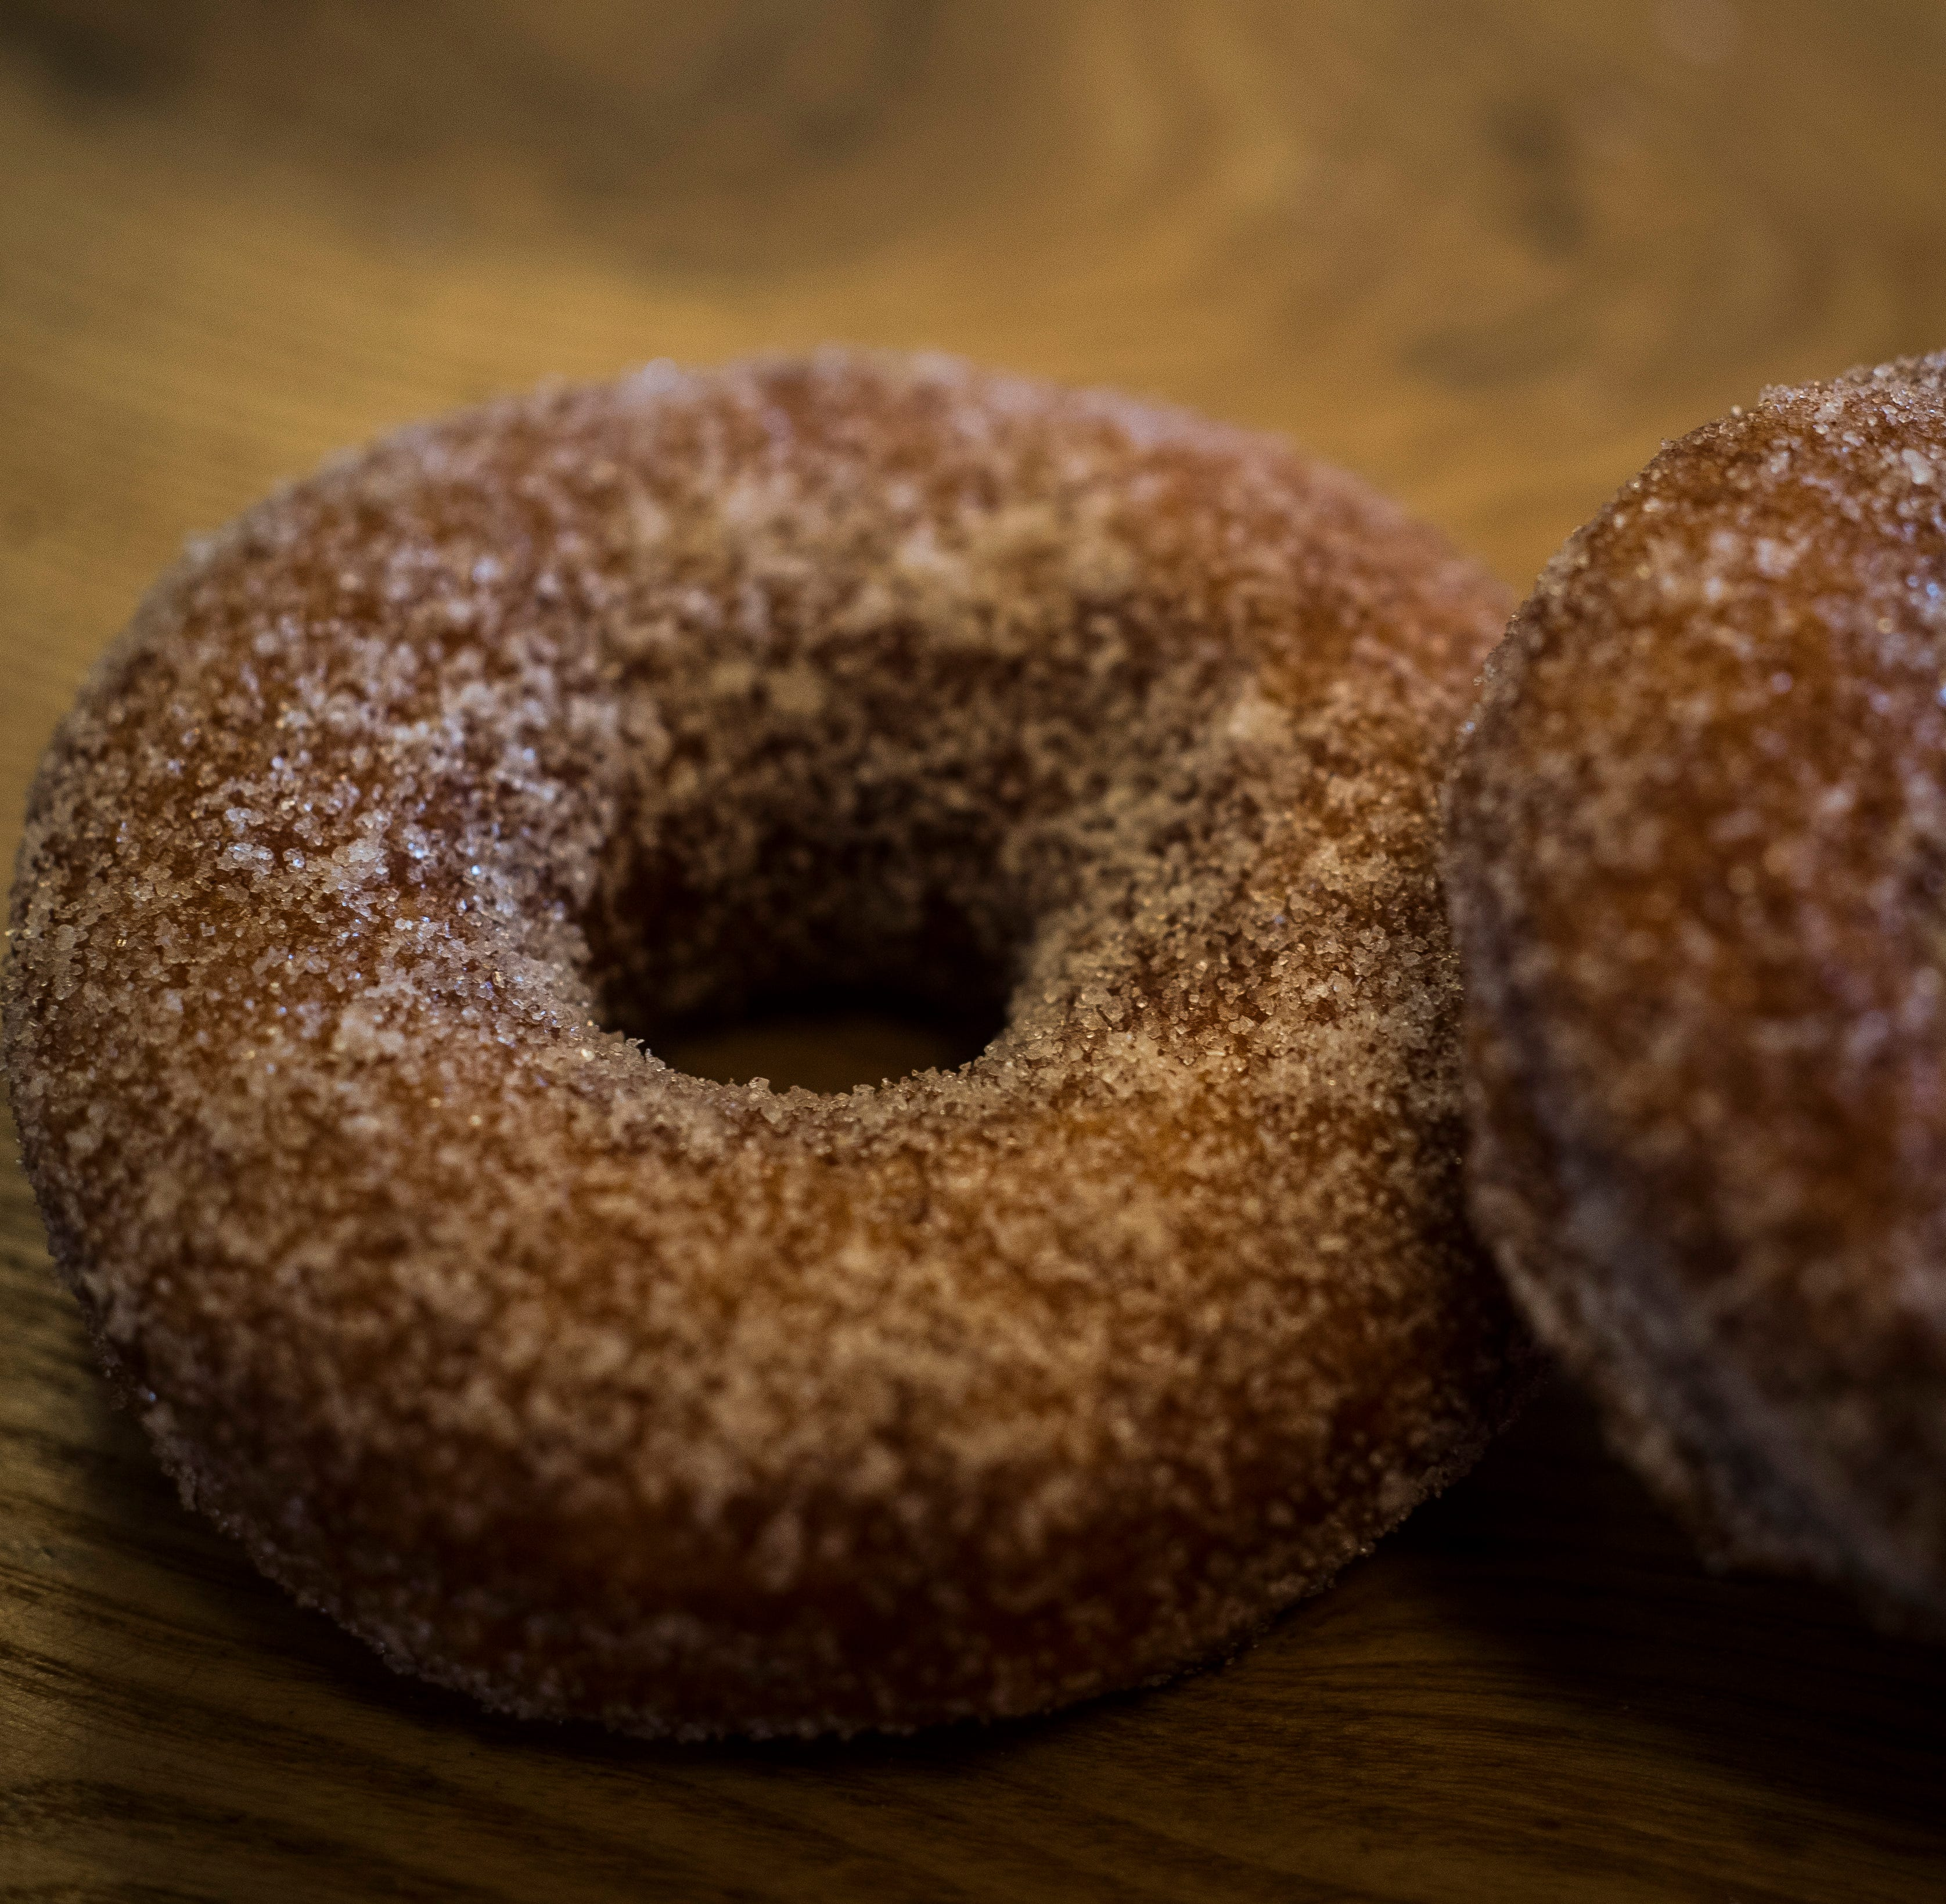 Cider doughnuts: Where to get them fresh off the fryer in Chittenden County, Vermont